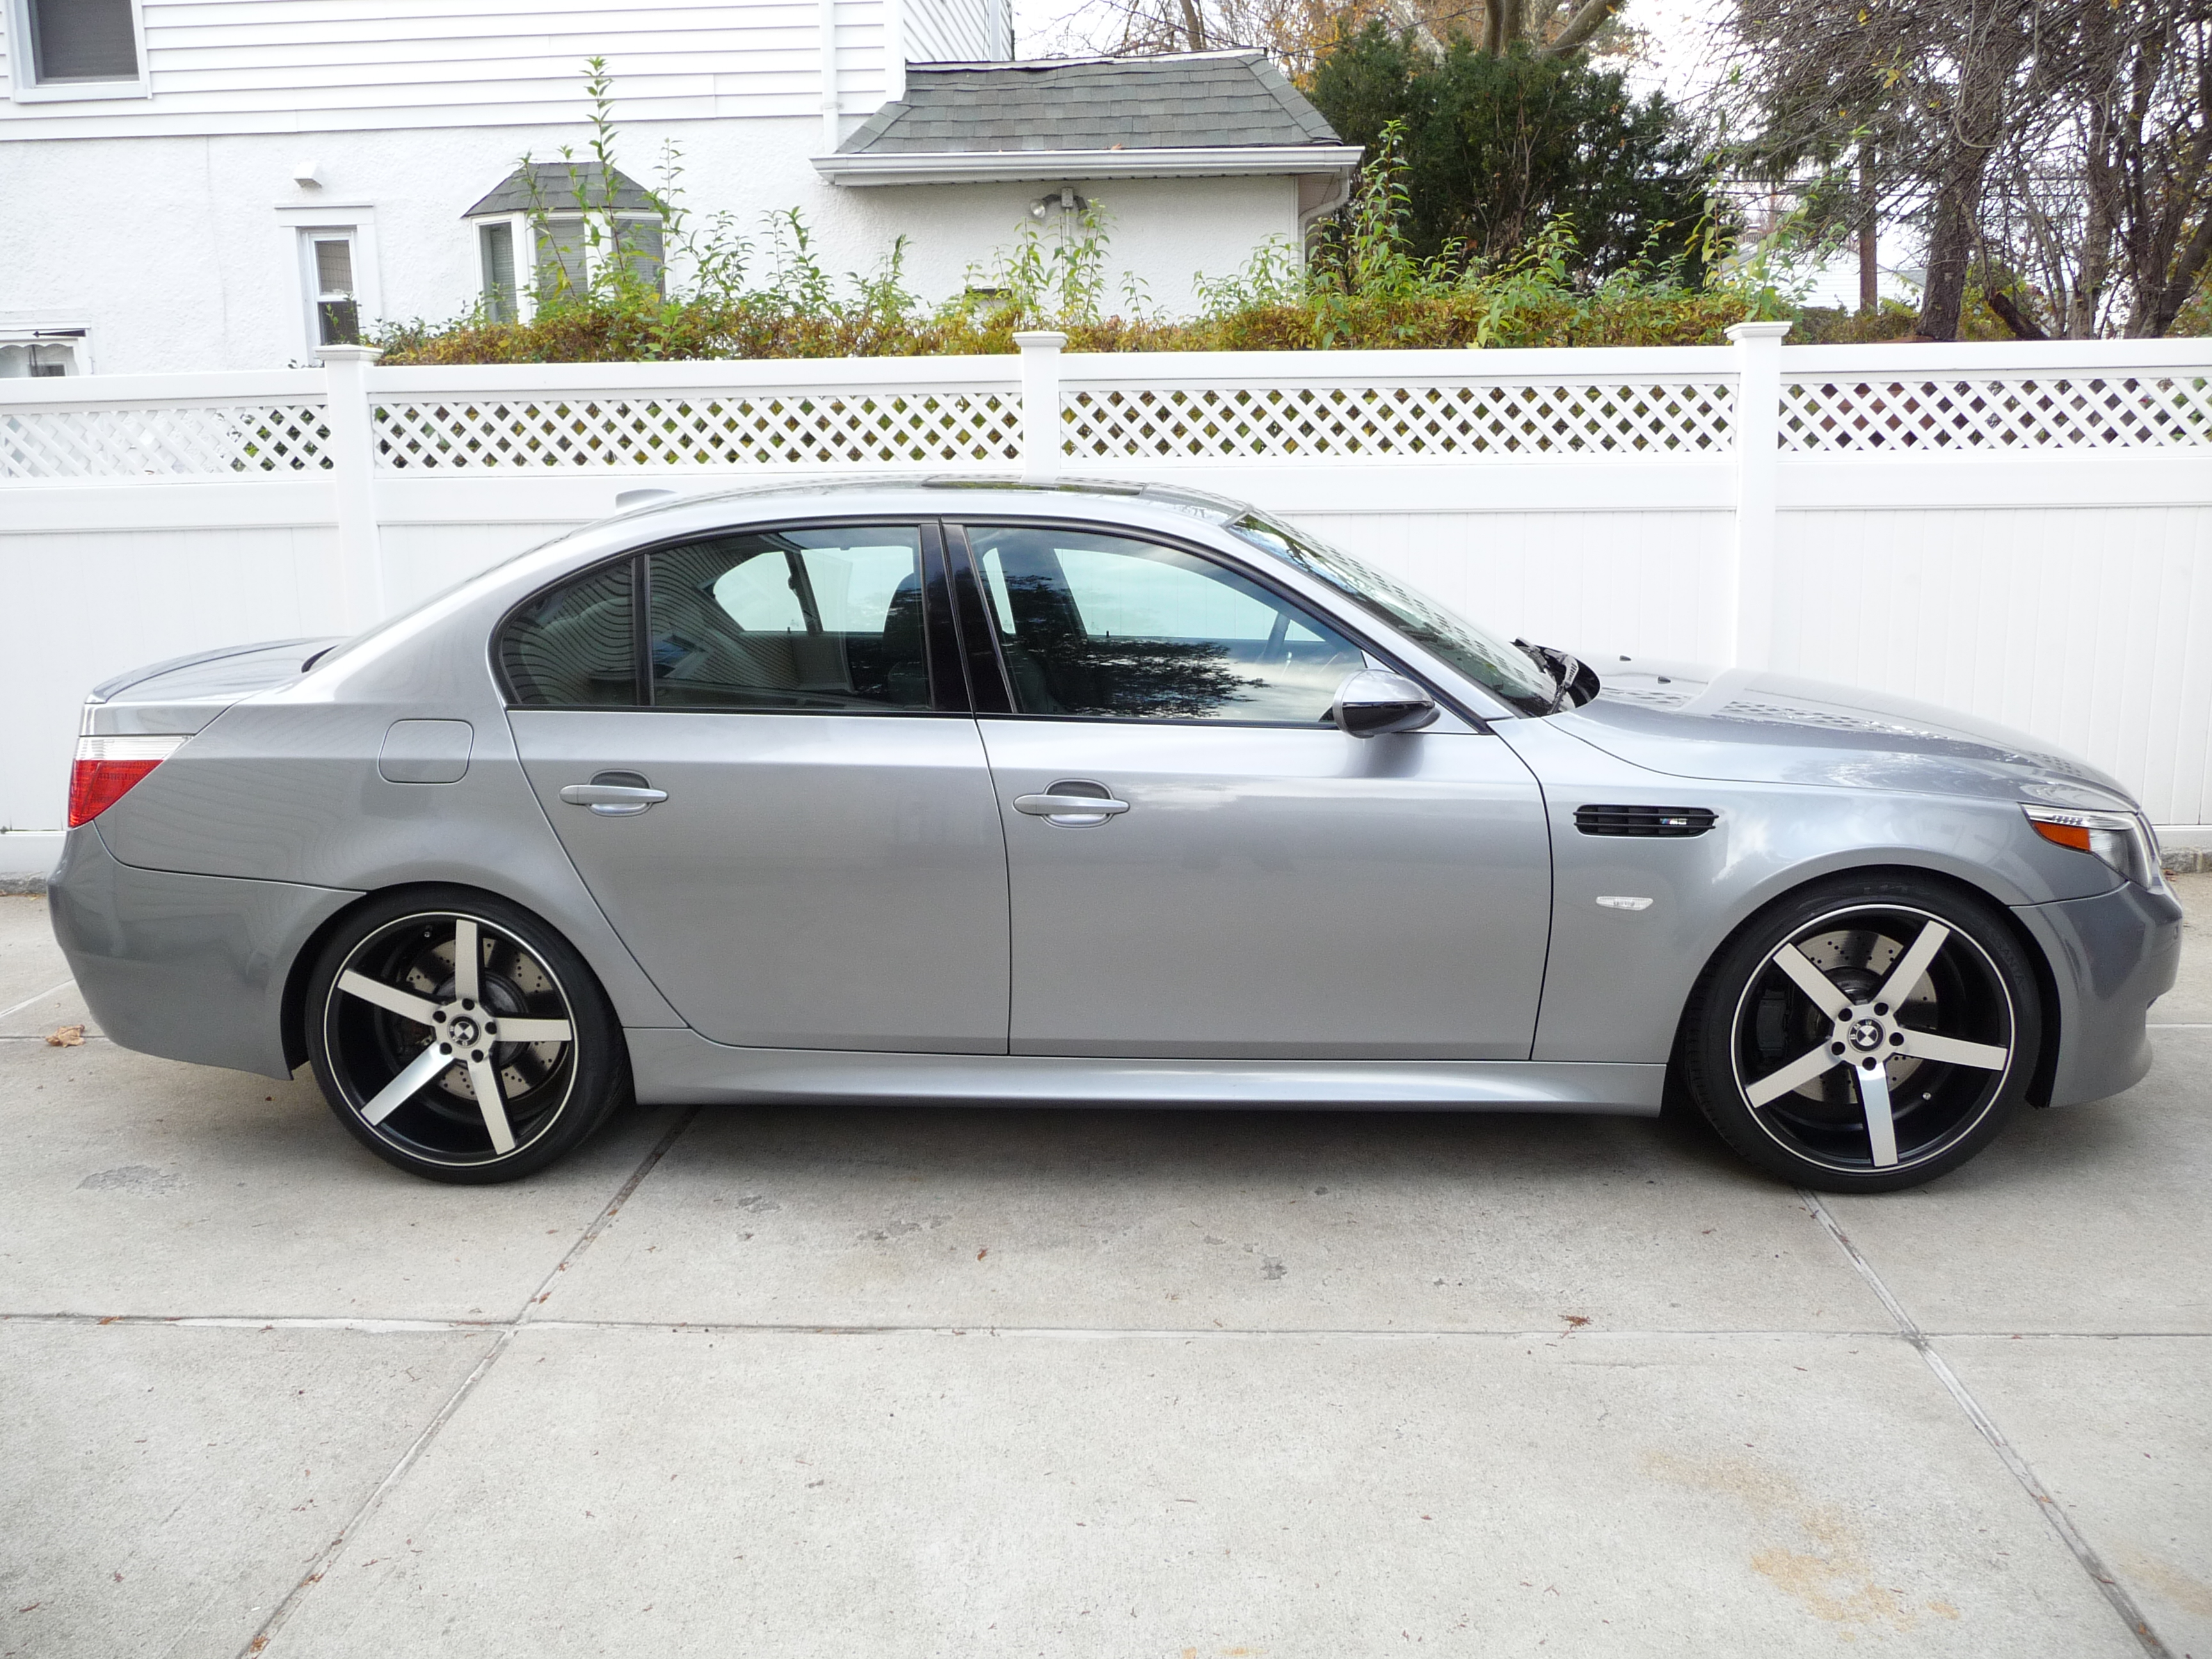 20 Quot Vossen Cv3 On My Beast Pics Inside Page 4 Bmw M5